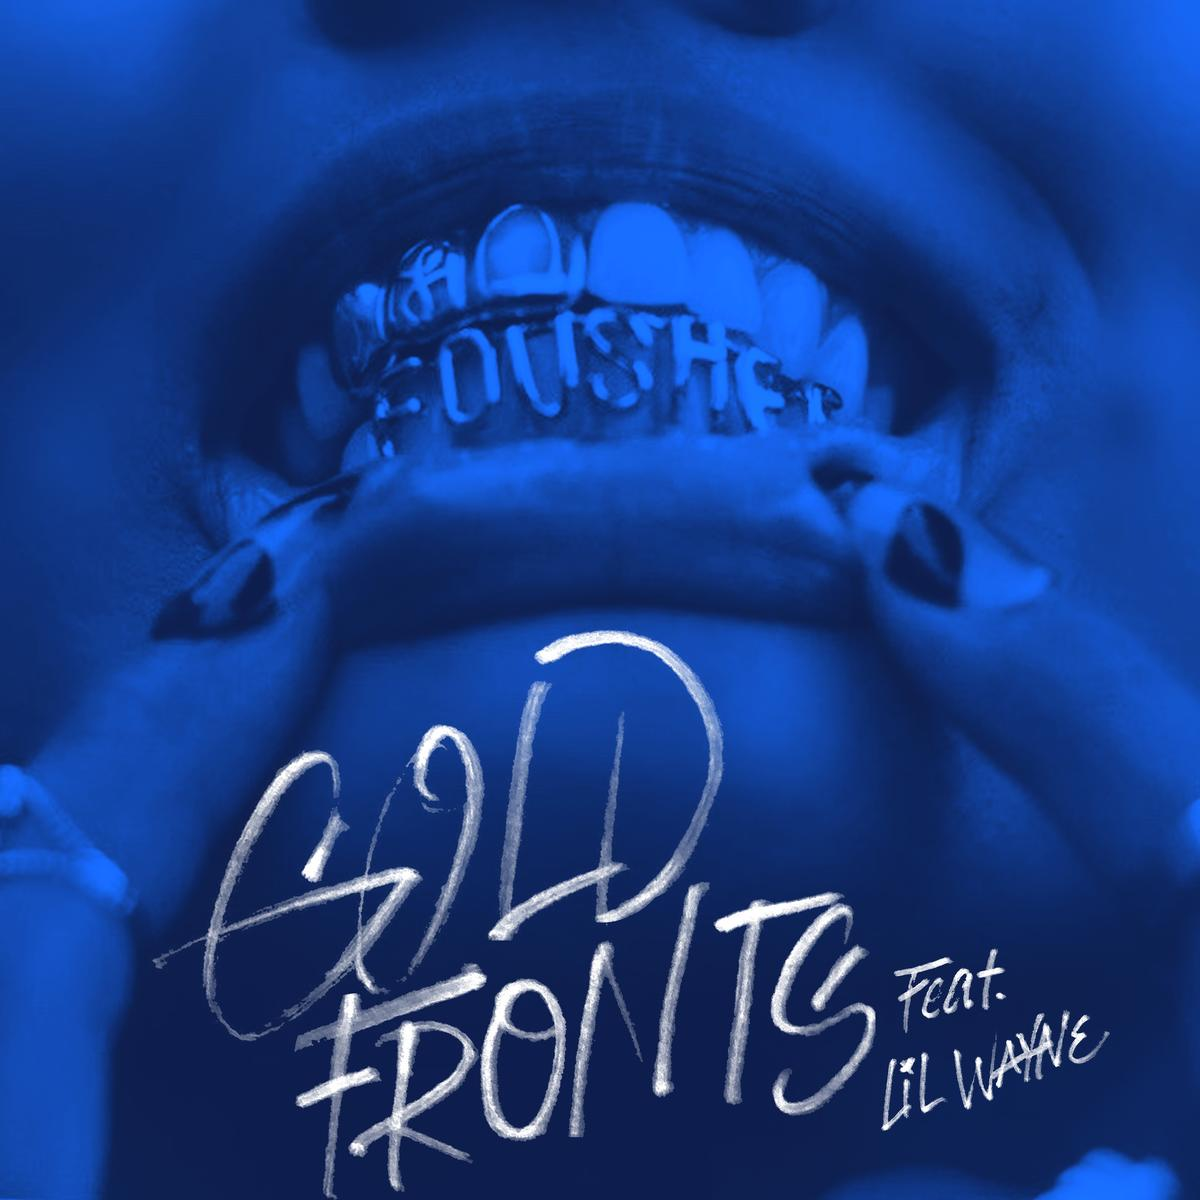 Foushee Feat. Lil Wayne - gold fronts mp3 download